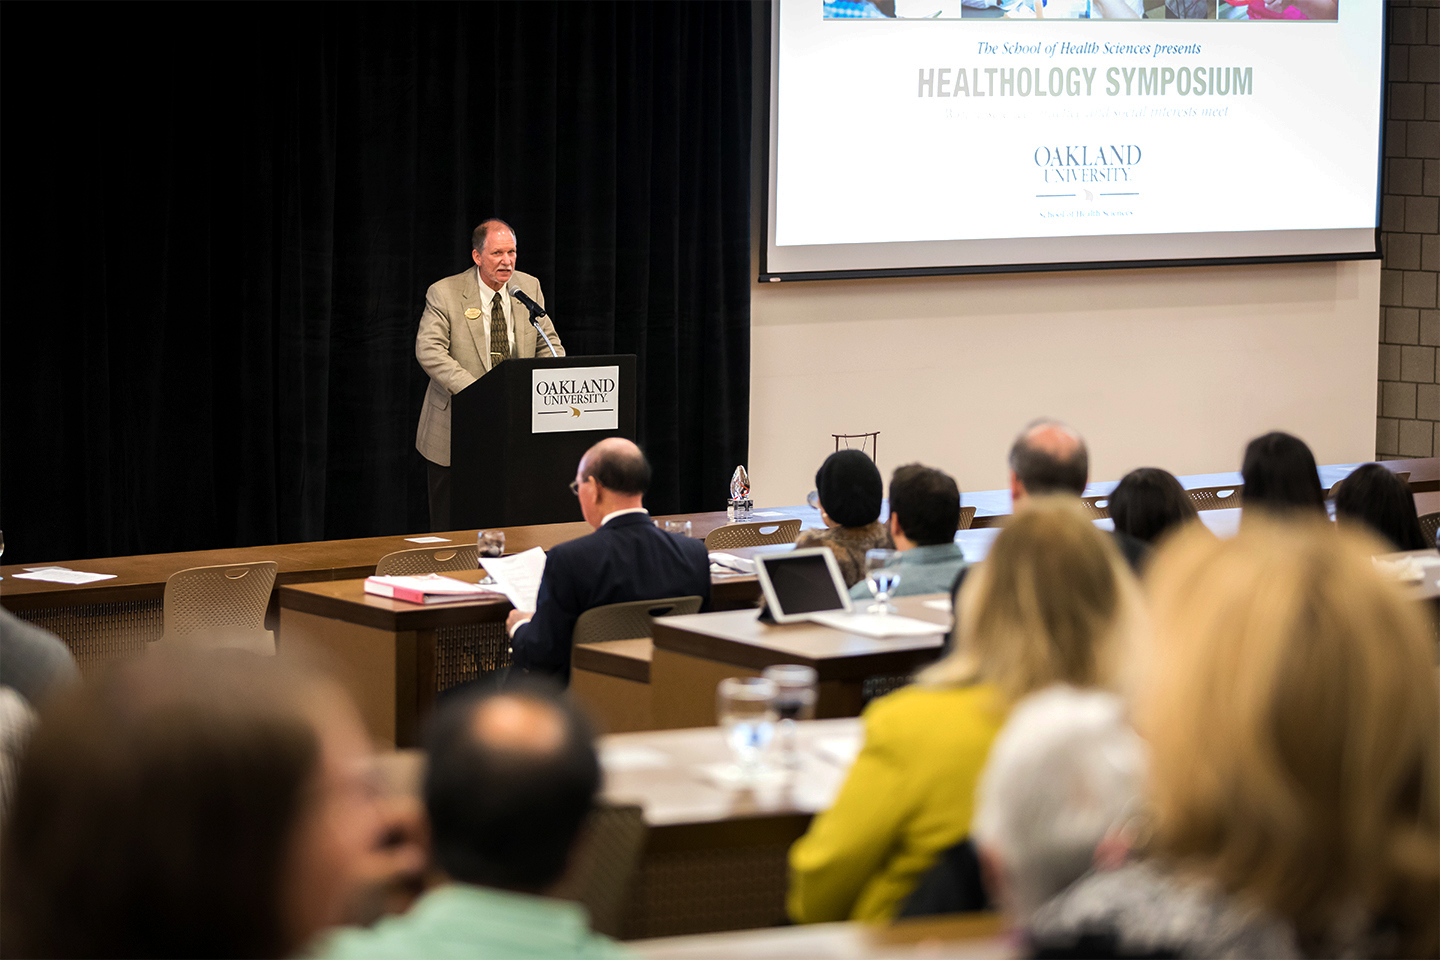 Oakland University to host 2018 Healthology Symposium